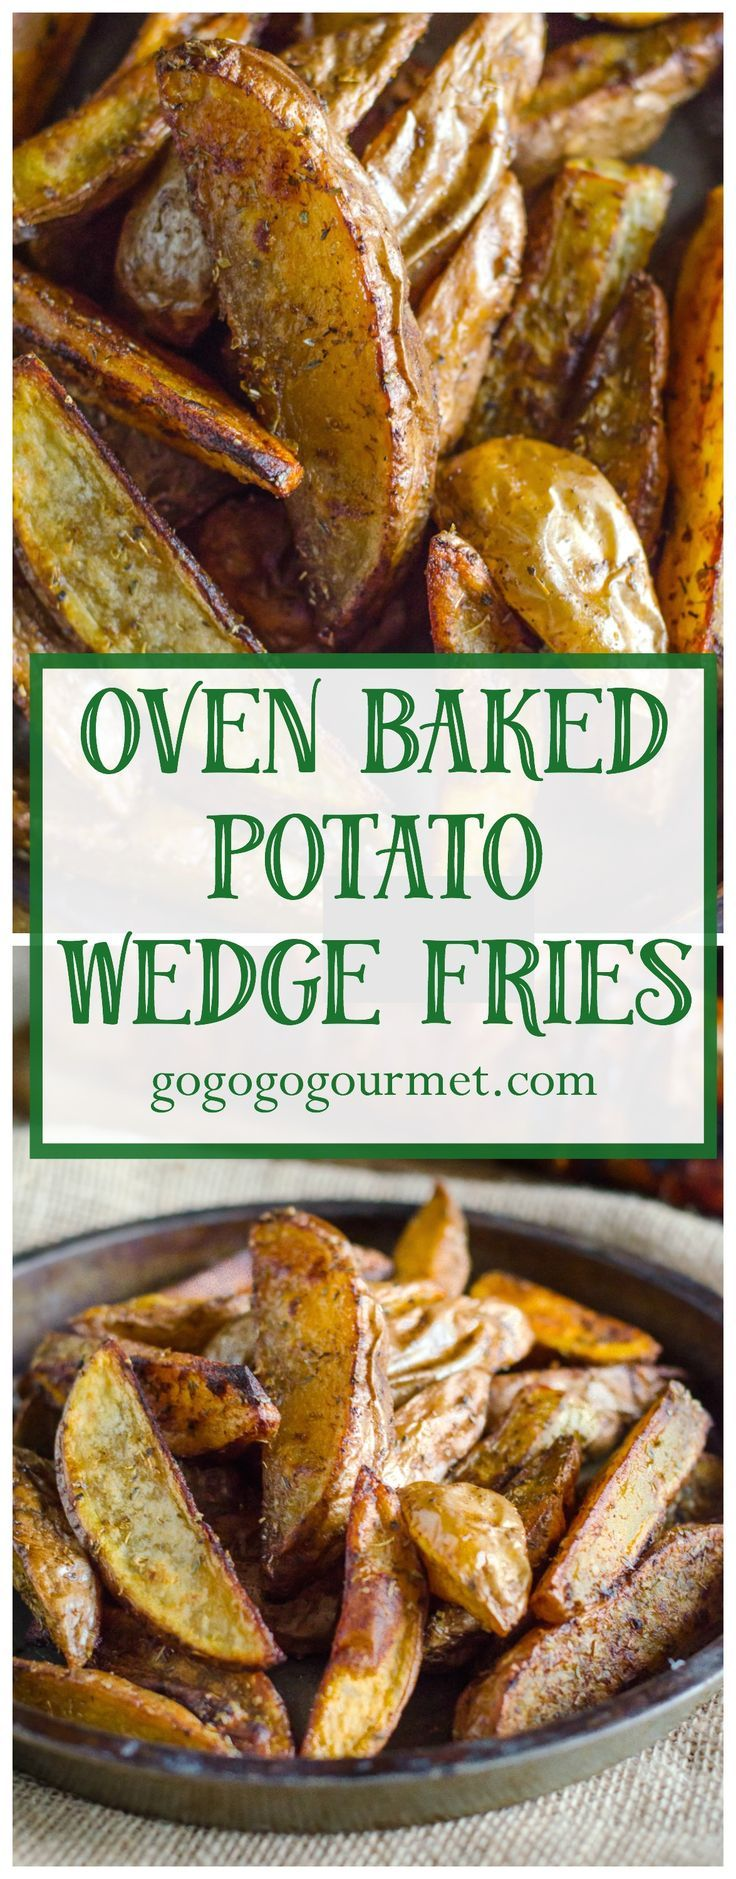 These Oven Baked Potato wedges are PERFECT- crispy on the outside, and soft and fluffy on the inside! Seasoned Oven Baked Potato Wedge Fries | Go Go Go Gourmet @Go Go Go Gourmet